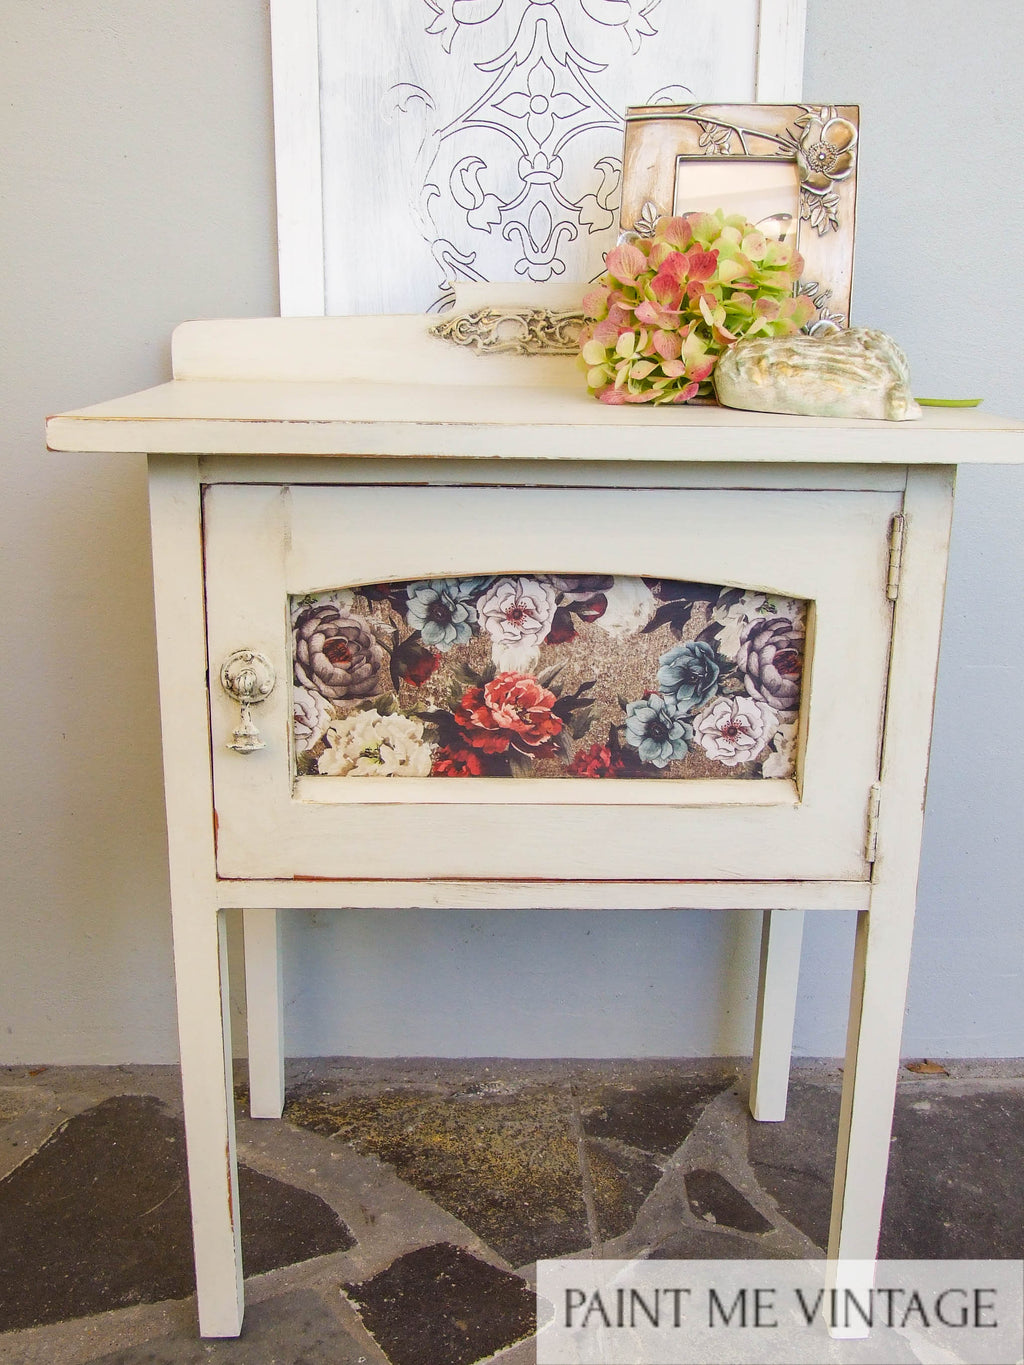 Yorkshire Stone Rustic Cabinet with Tea Rose Garden transfer - commission